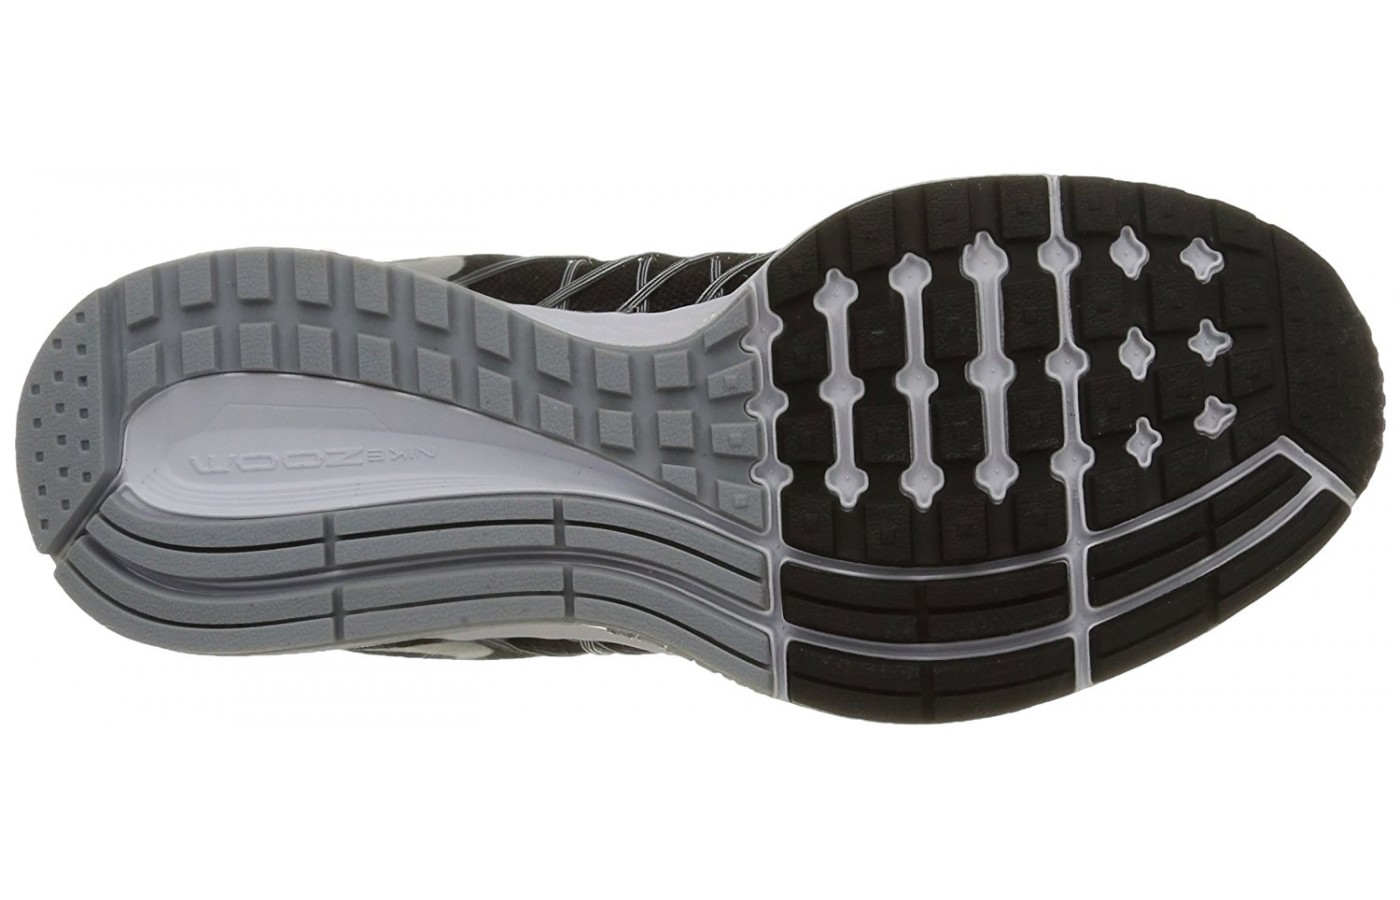 A bottom view of the Nike Zoom Pegasus 32 running shoe.